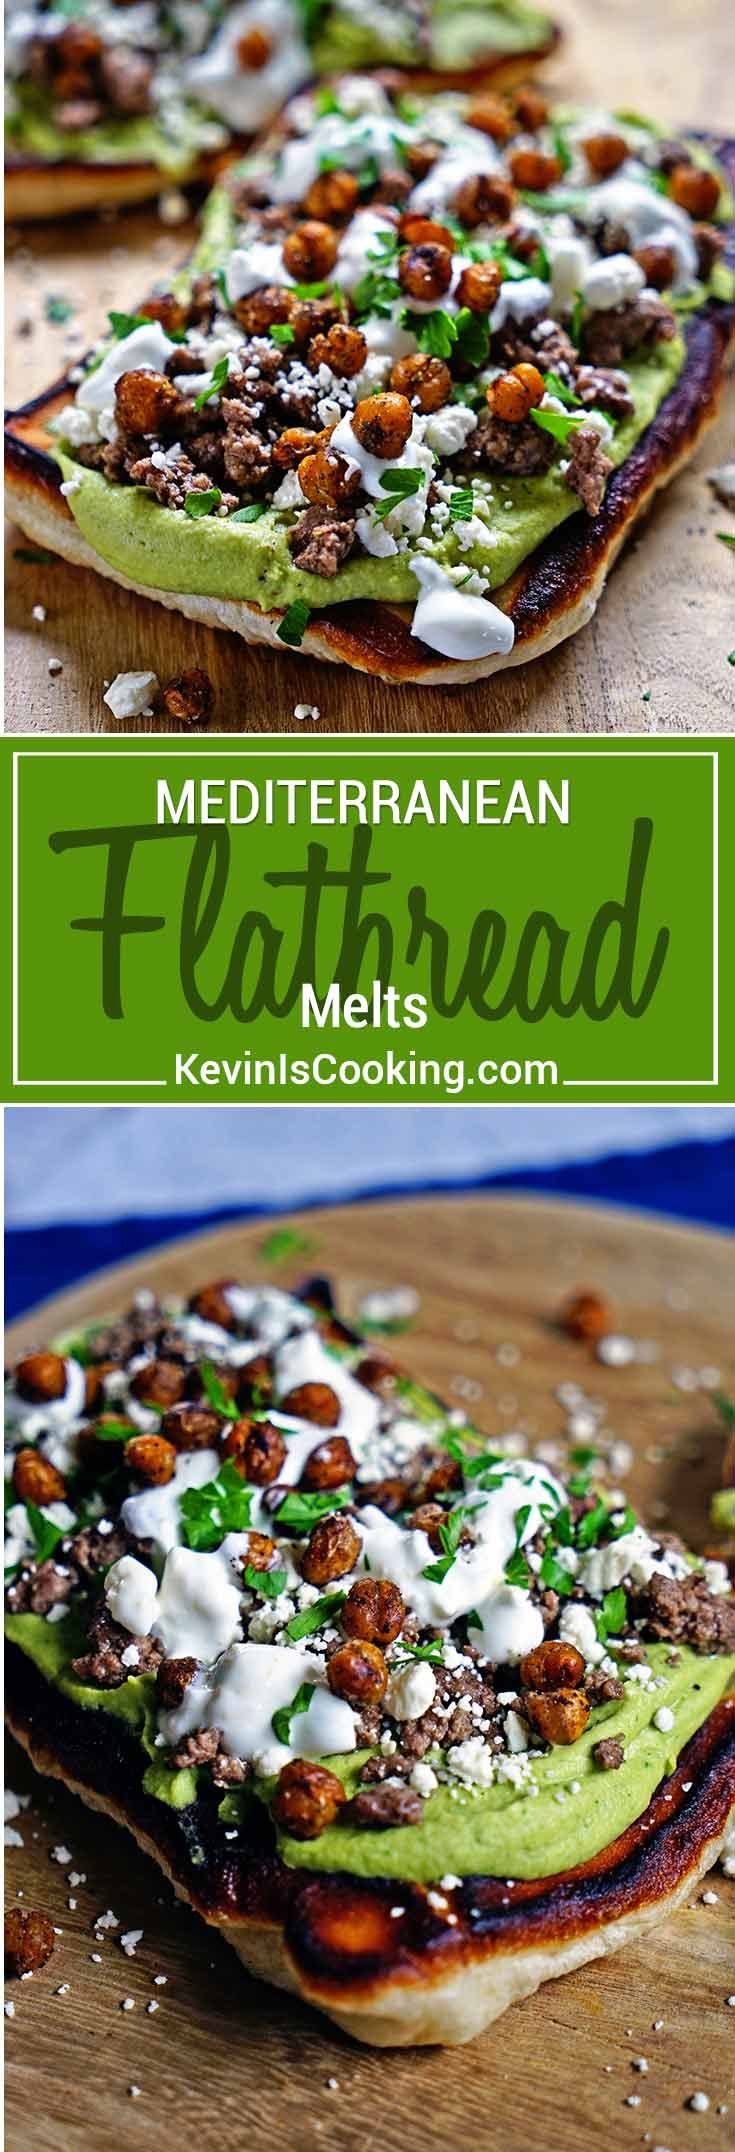 These Mediterranean Flatbread Melts are super easy, made with browned lamb, hummus and feta cheese and the flatbread is made with refrigerated pizza dough. via @keviniscooking